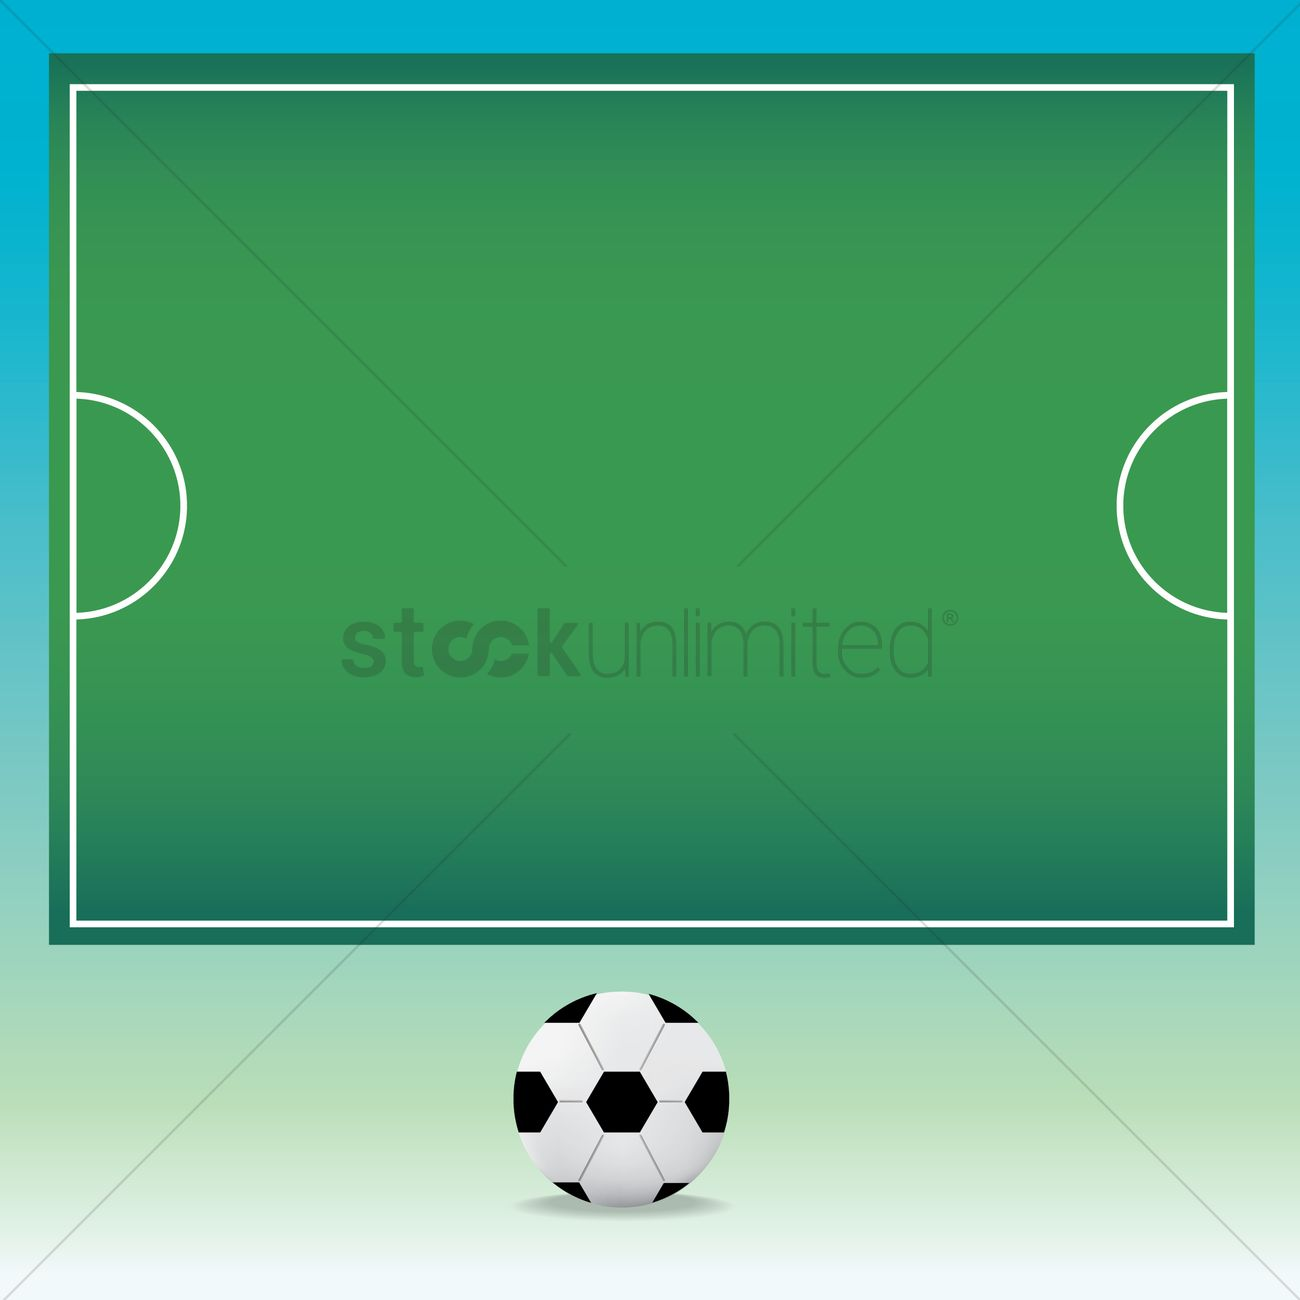 soccer field template vector image 1538253 stockunlimited